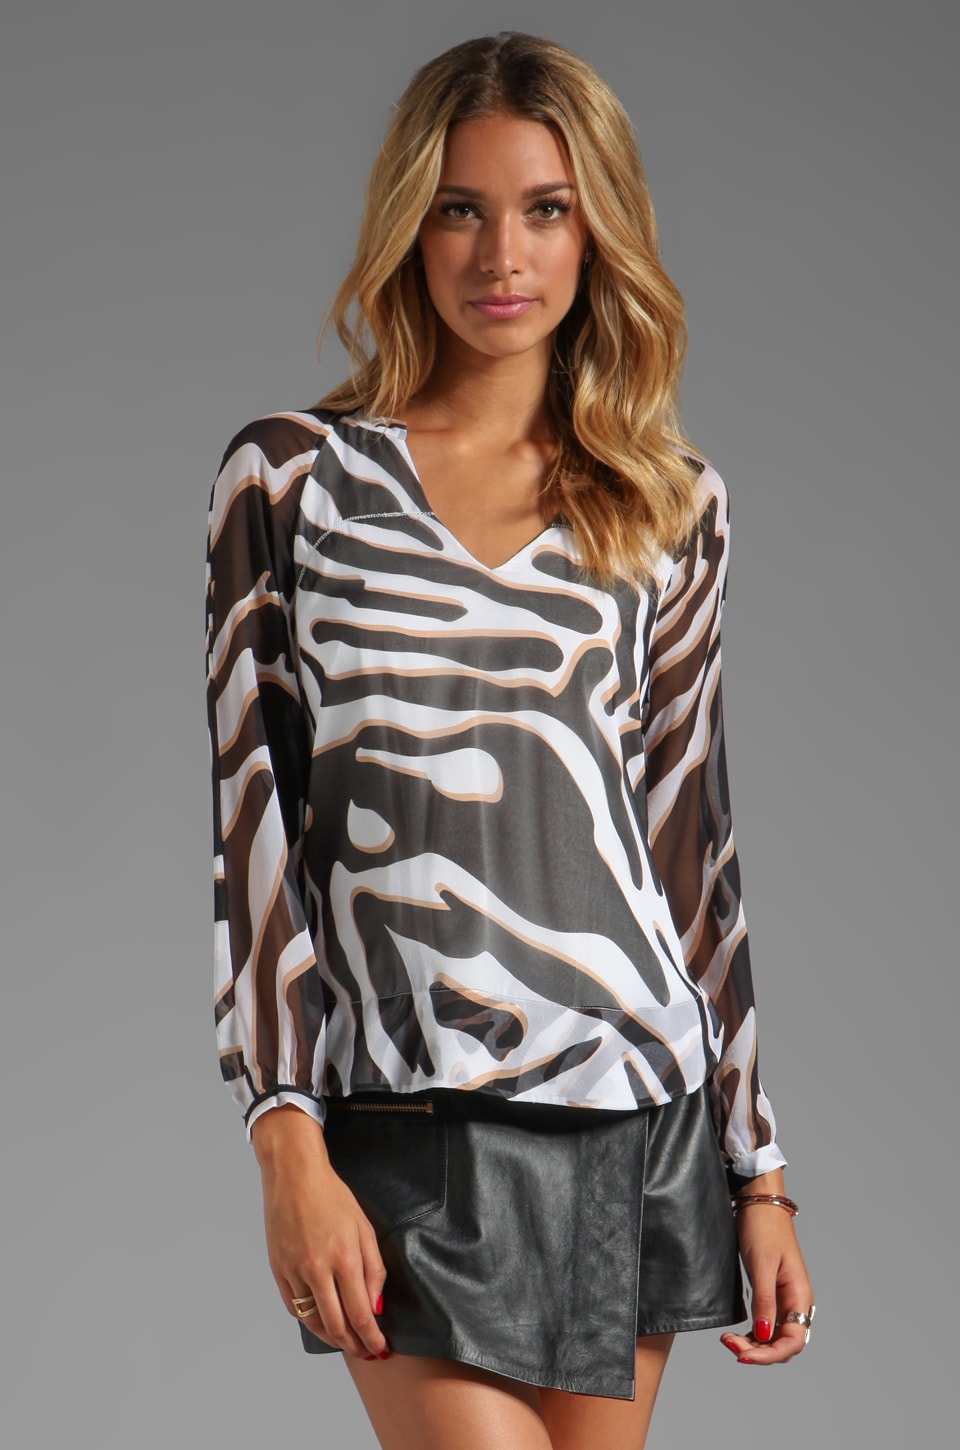 Diane von Furstenberg Maiko Chiffon Top in Zebra Shadow Black